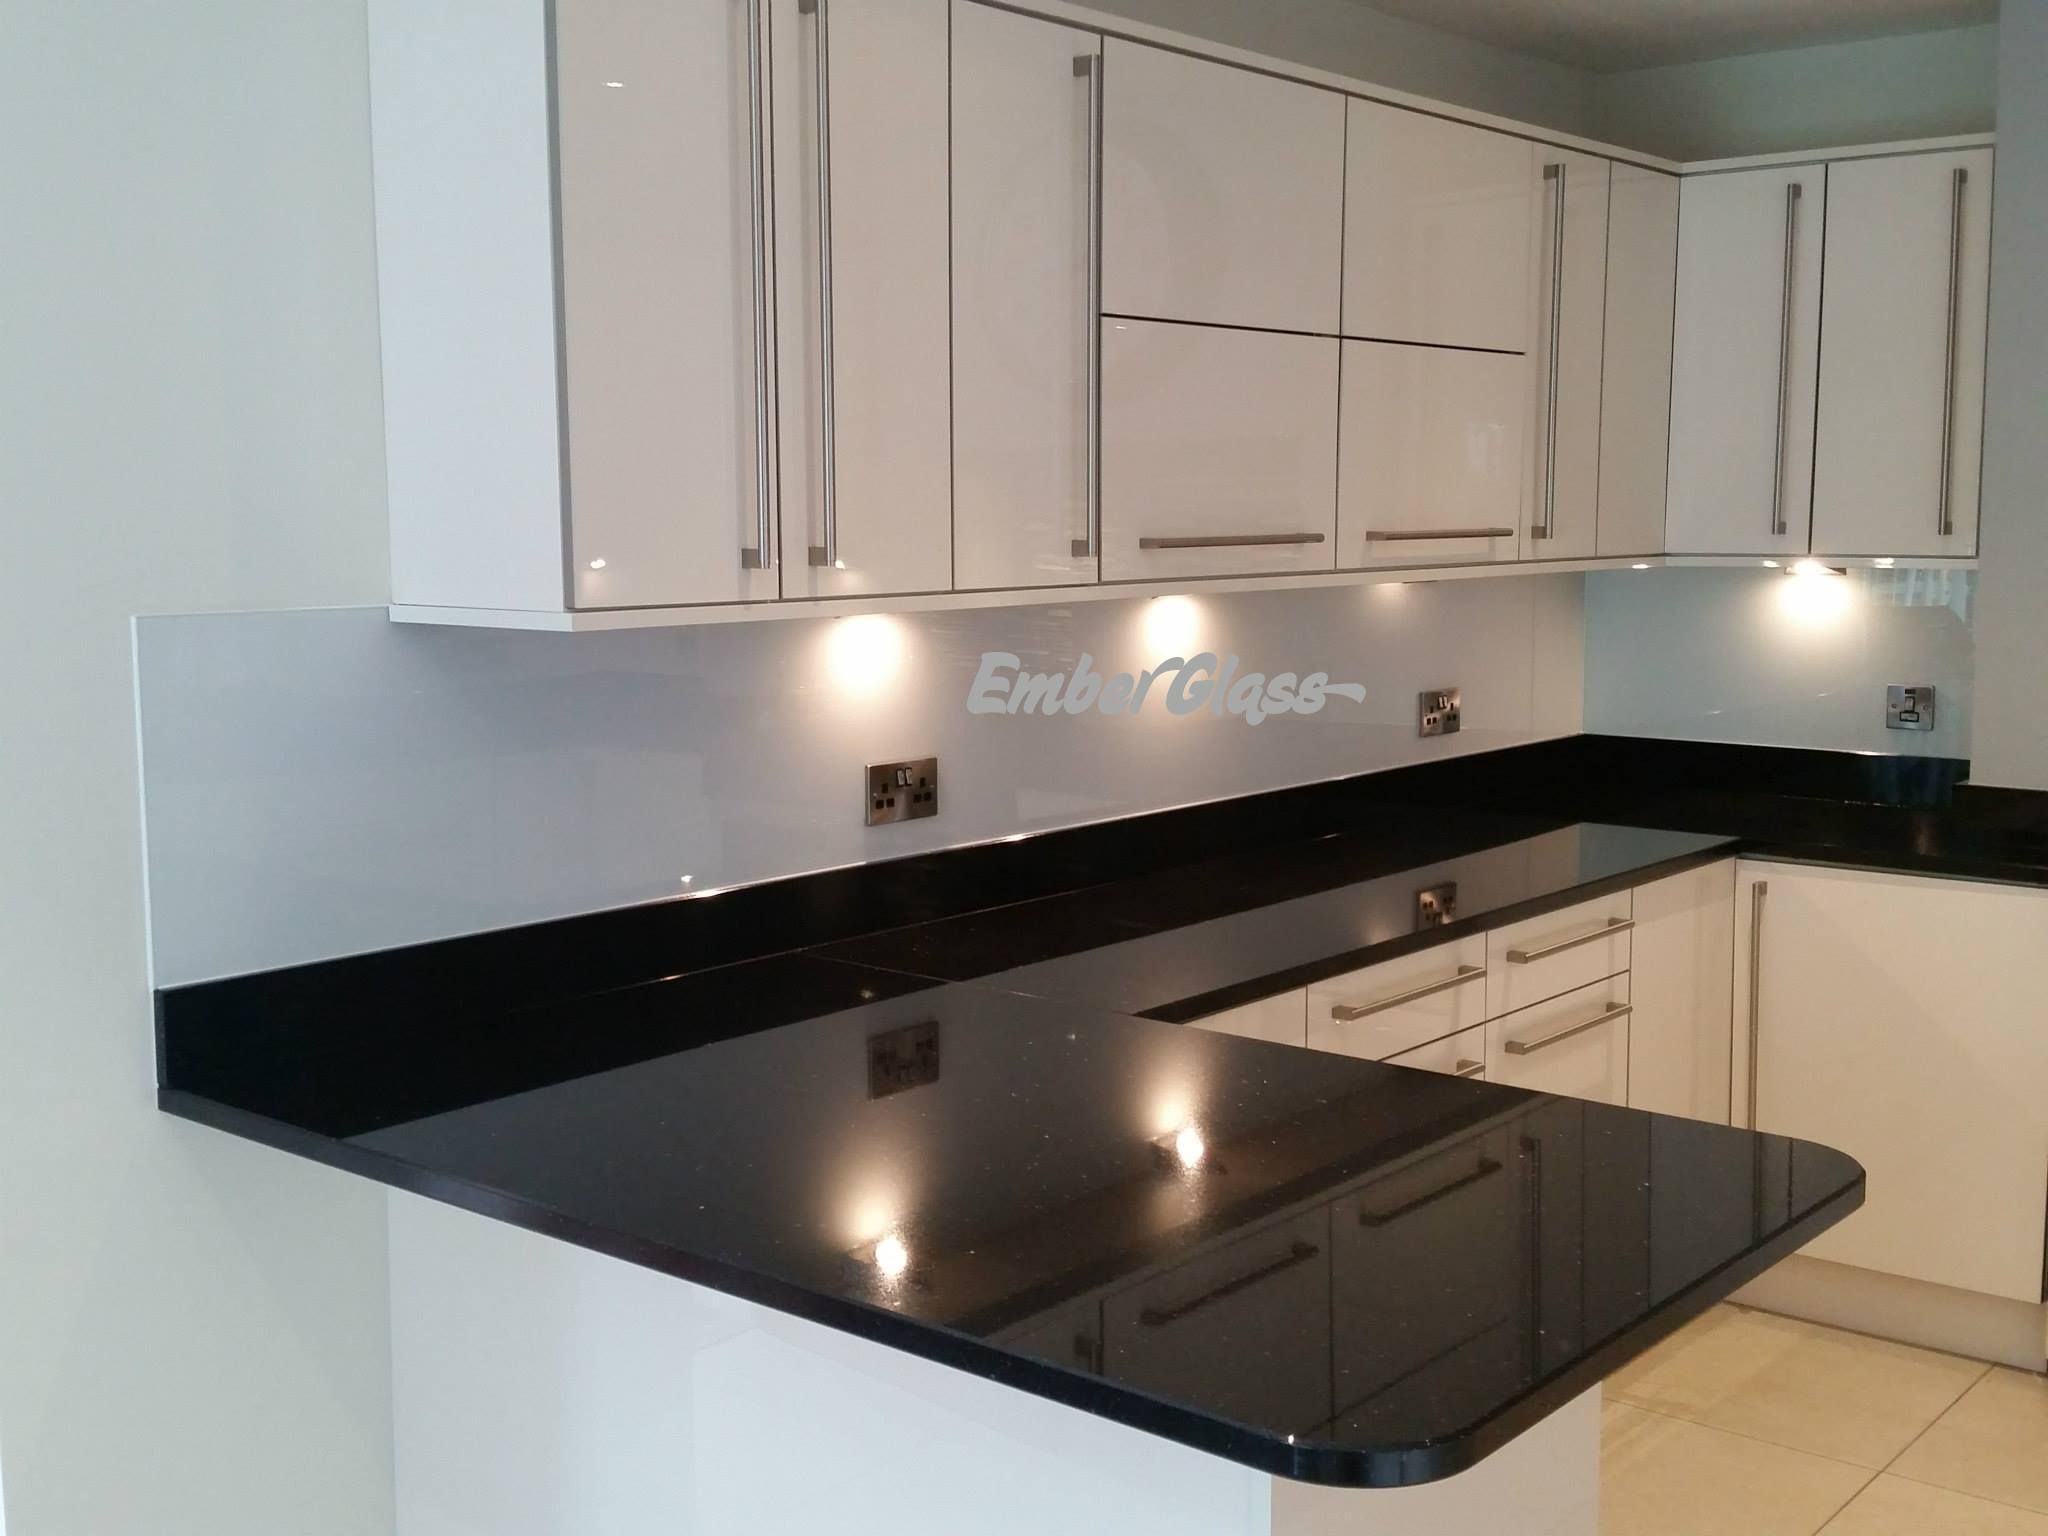 White Glass Splashback In Stunning Modernist Kitchen. Ember Glass Create  Bespoke Glass Products In Any Colour, Pattern Or Image. Whether Itu0027s A  Splash Back, ...